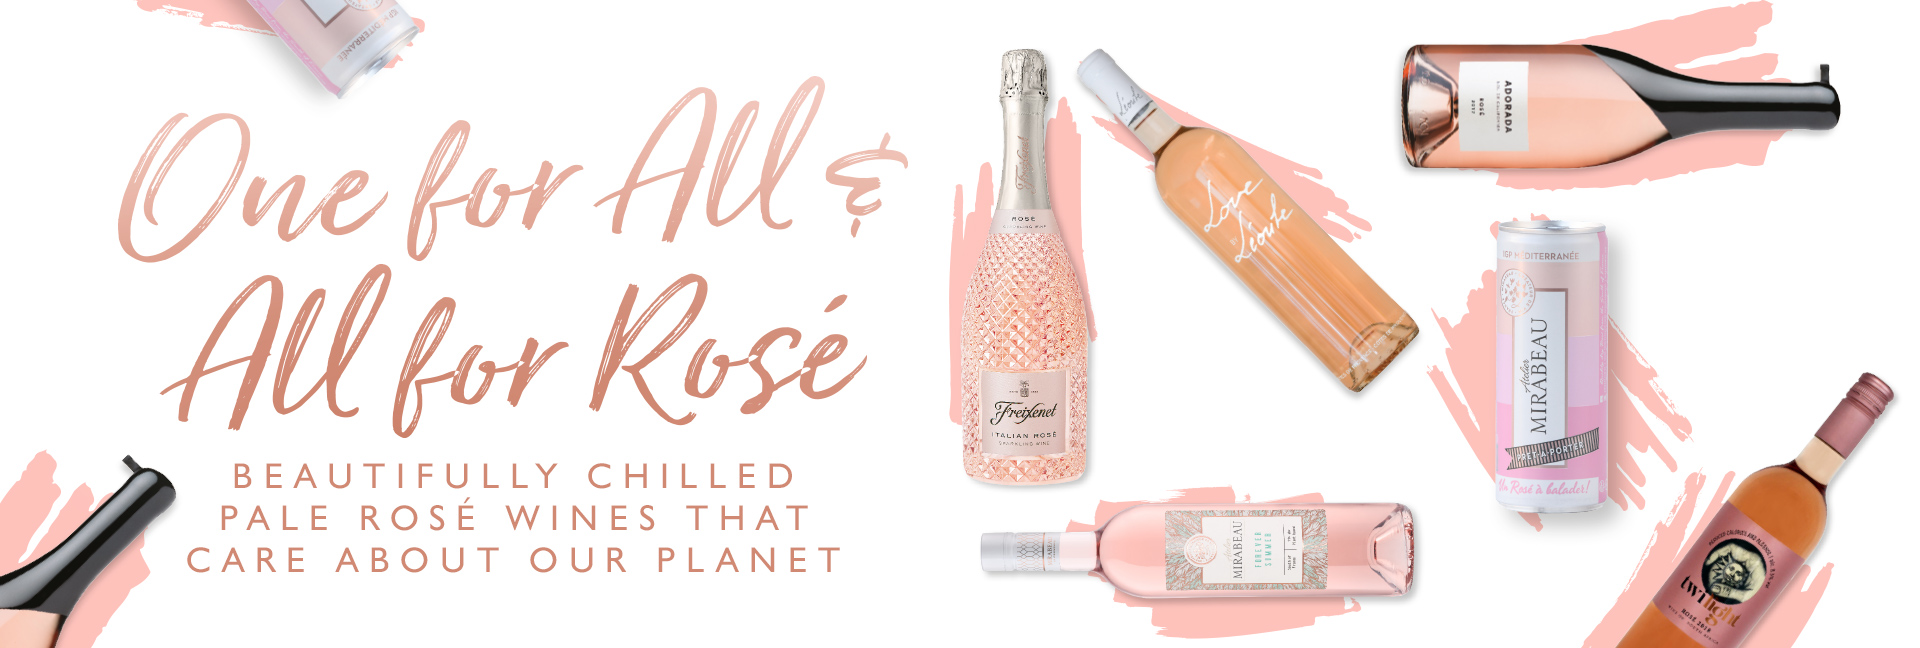 One For All & All For Rosé at All Bar One